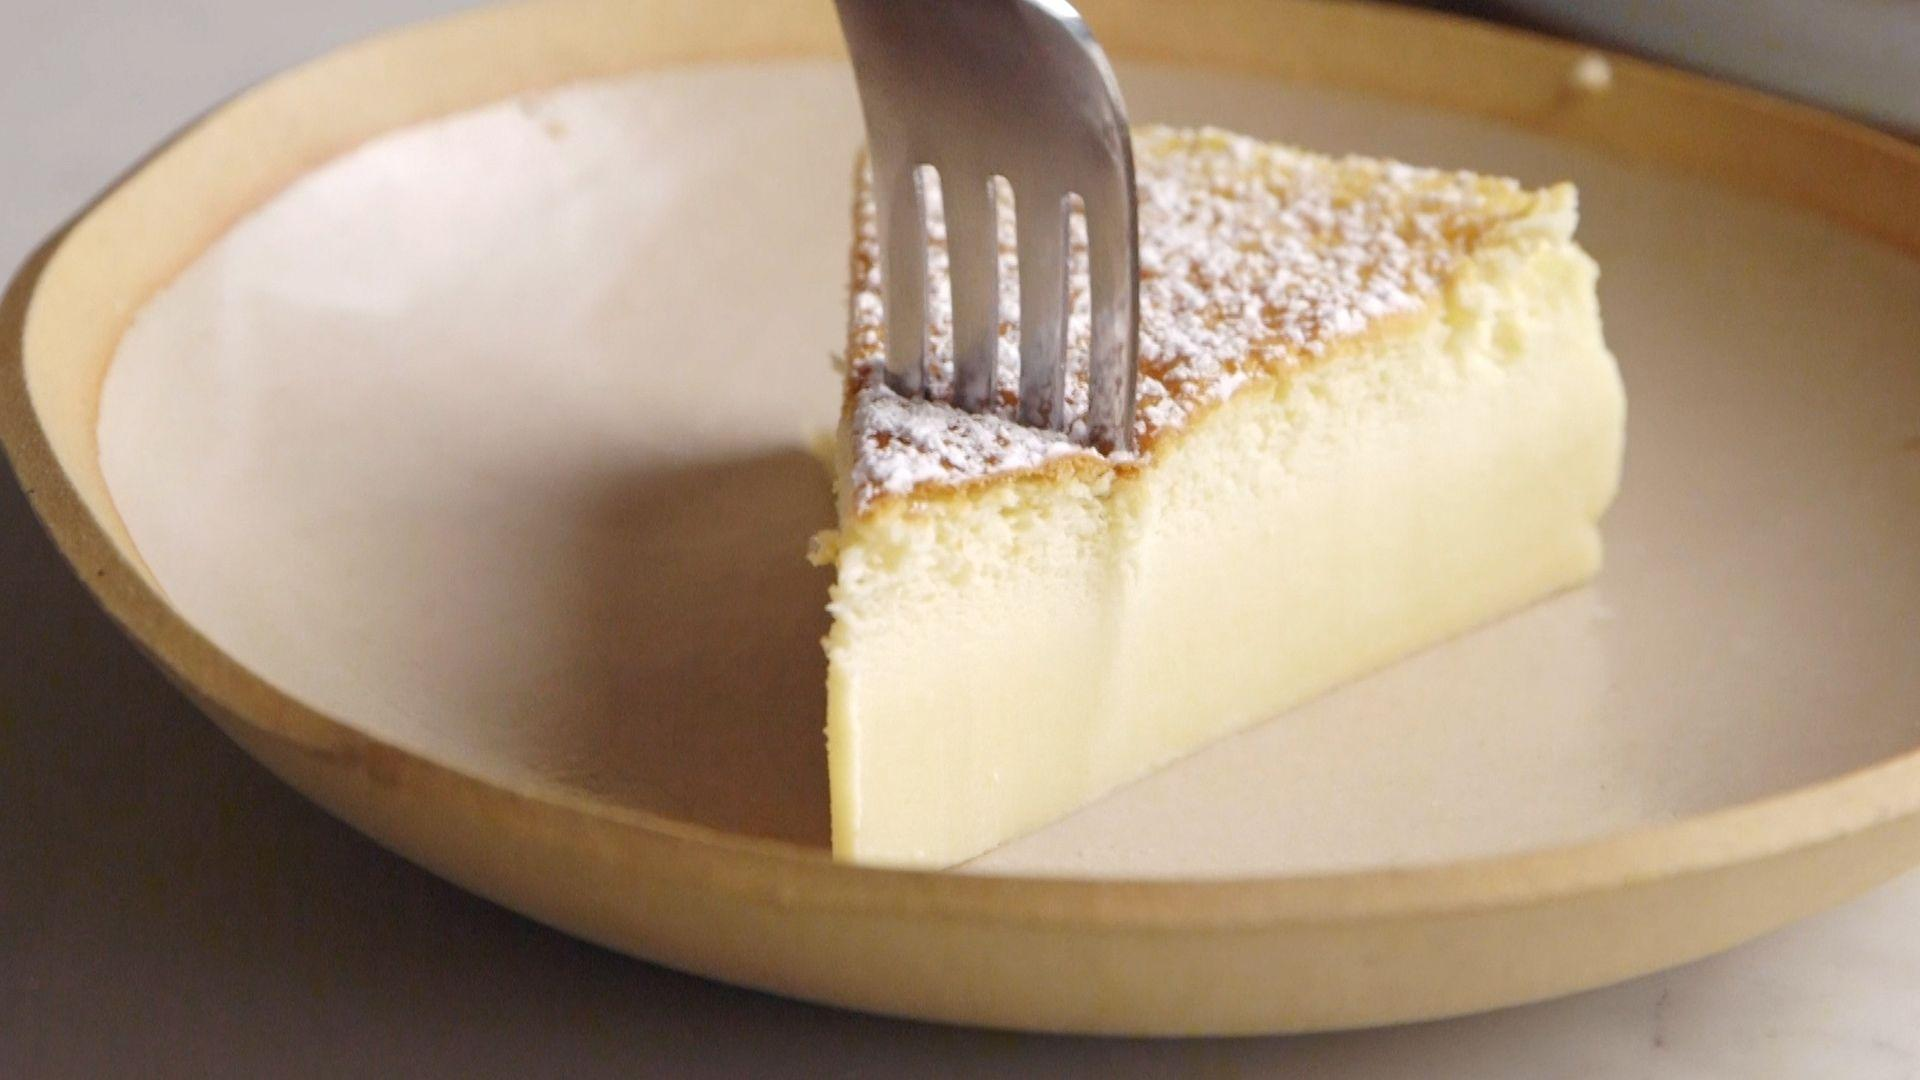 There's A Reason This Easy Cheesecake Recipe Is Going Viral